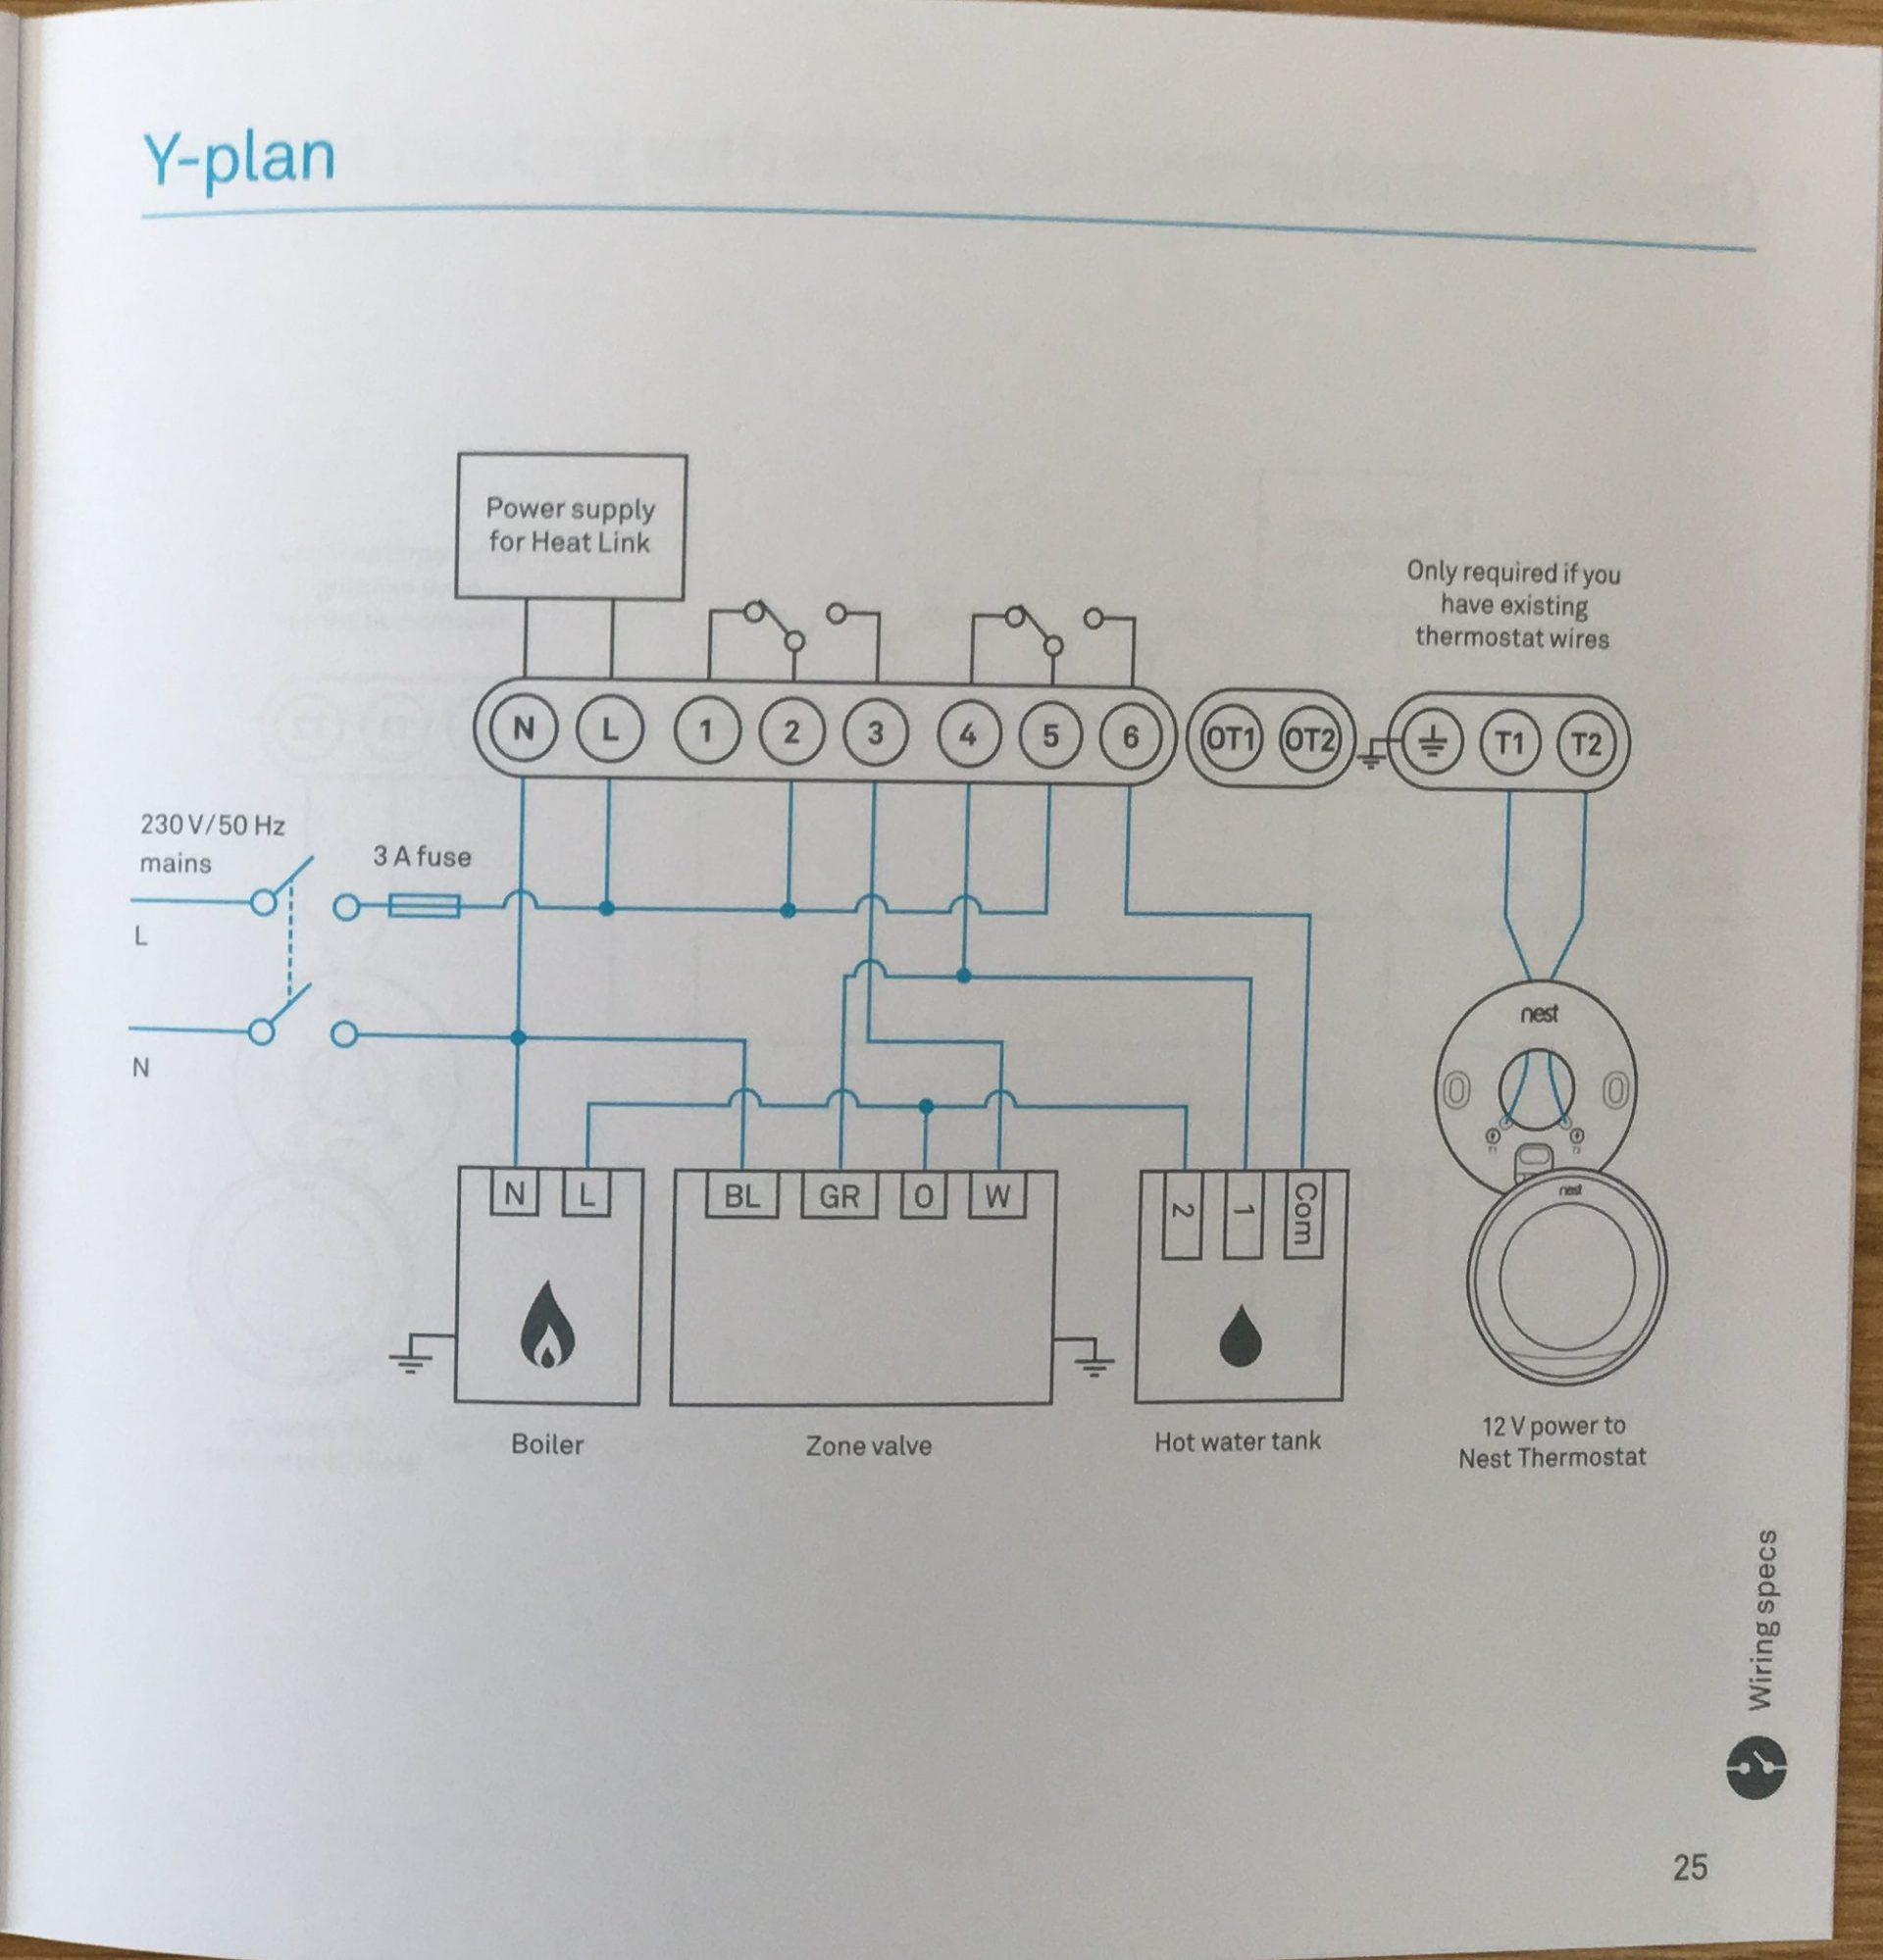 How To Install The Nest Learning Thermostat (3Rd Gen) In A Y-Plan - Nest Wiring Diagram Ac